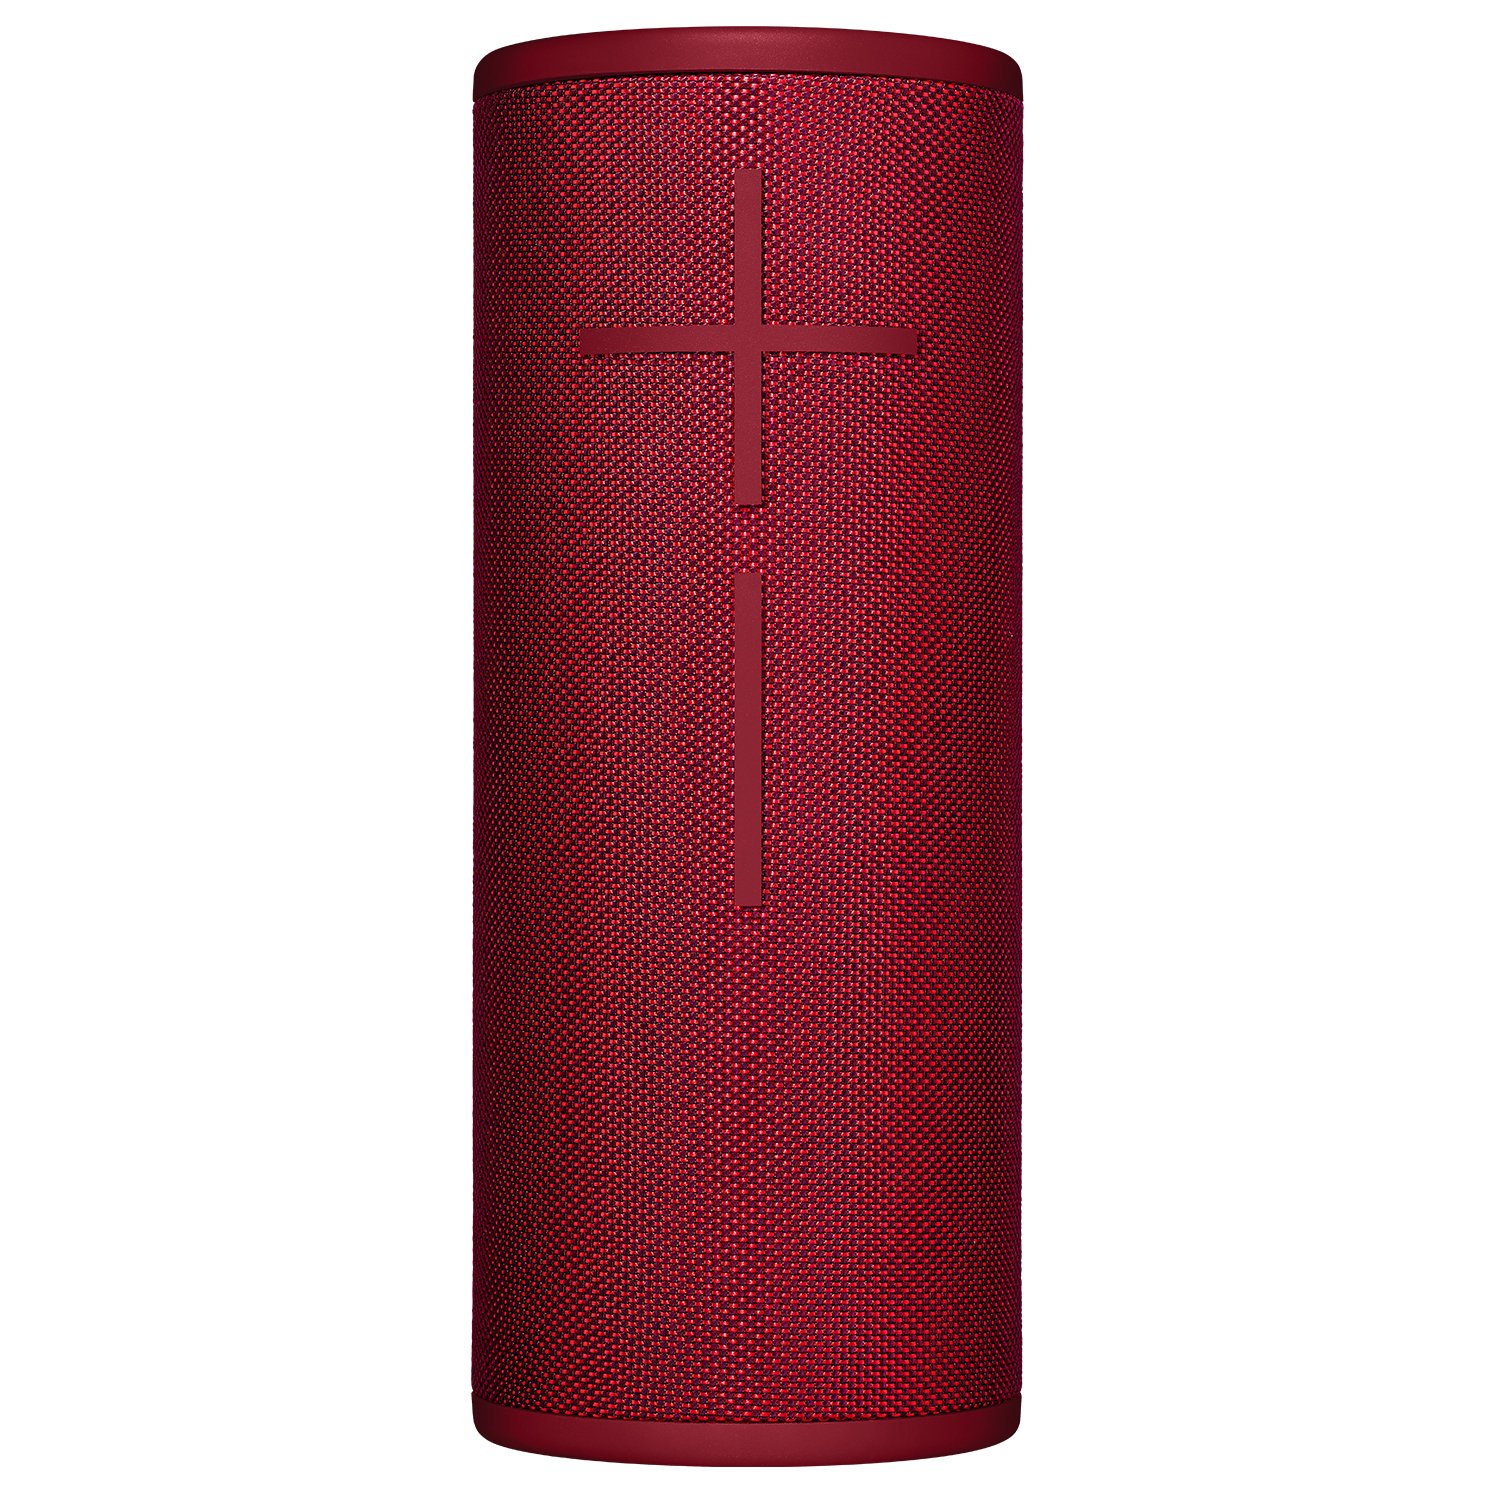 Ultimate Ears Boom 3 Portable Waterproof Bluetooth Speaker - Sunset Red